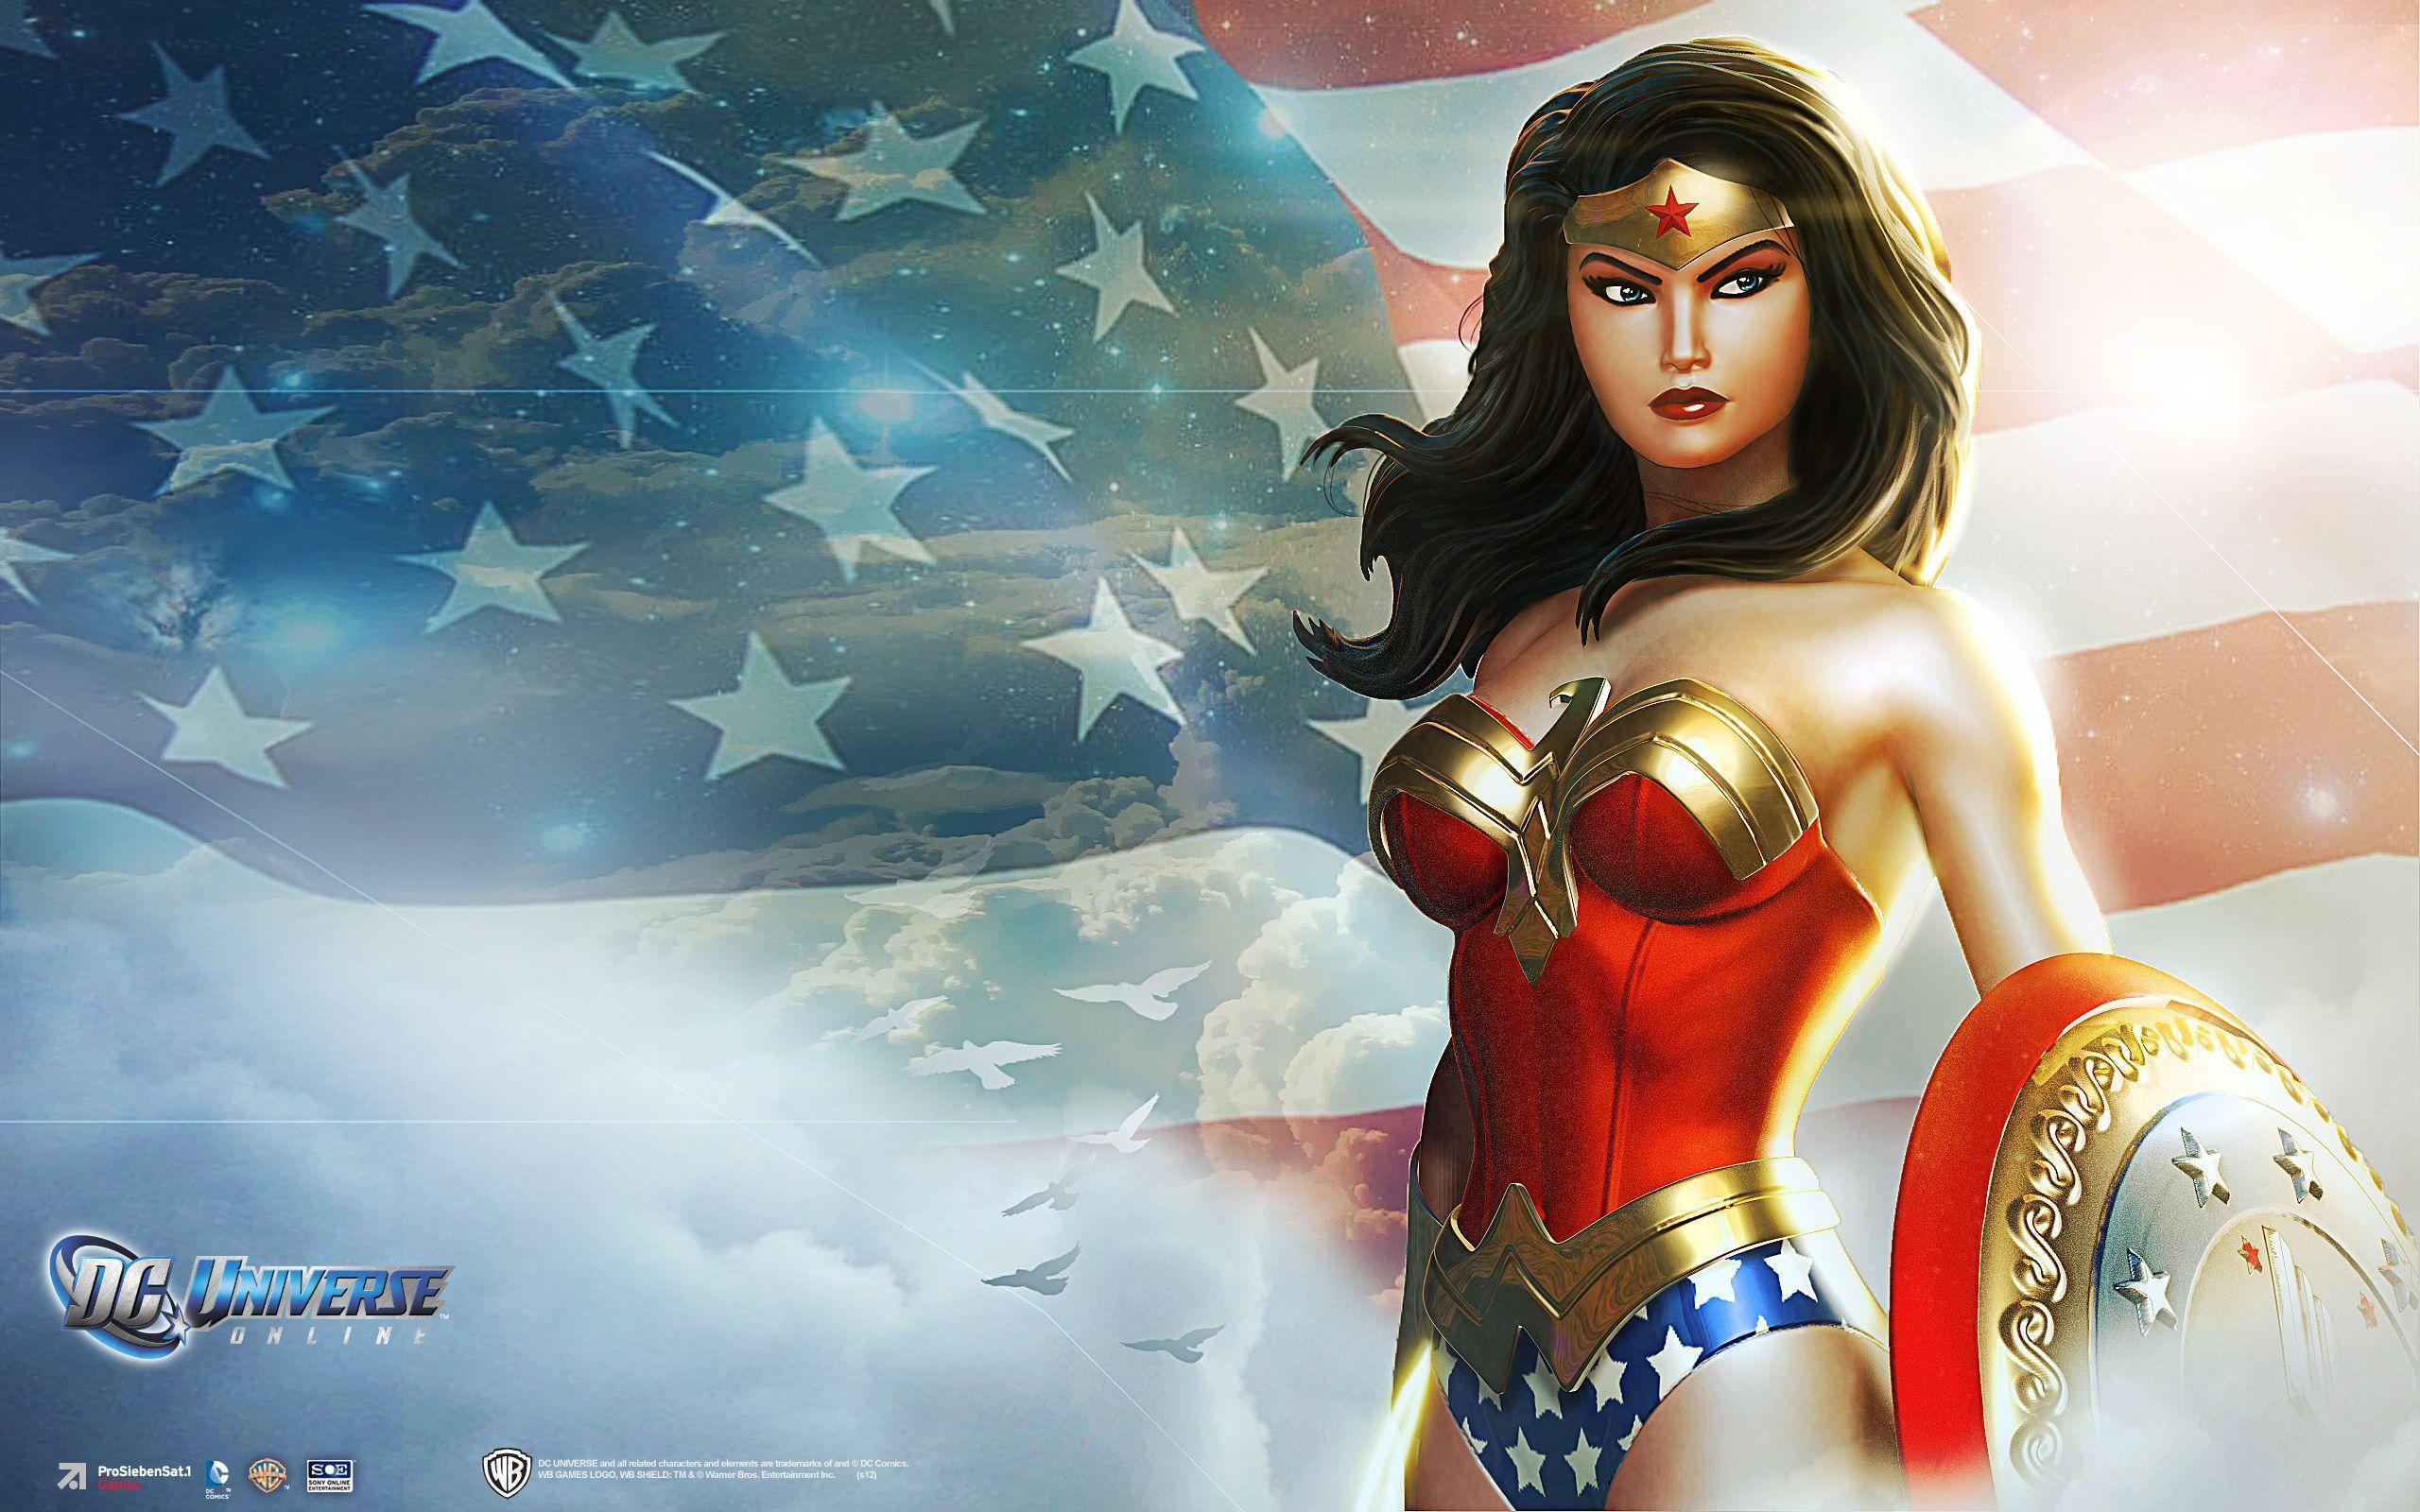 Wonder Woman Computer Wallpapers, Desktop Backgrounds | 2560x1600 ...